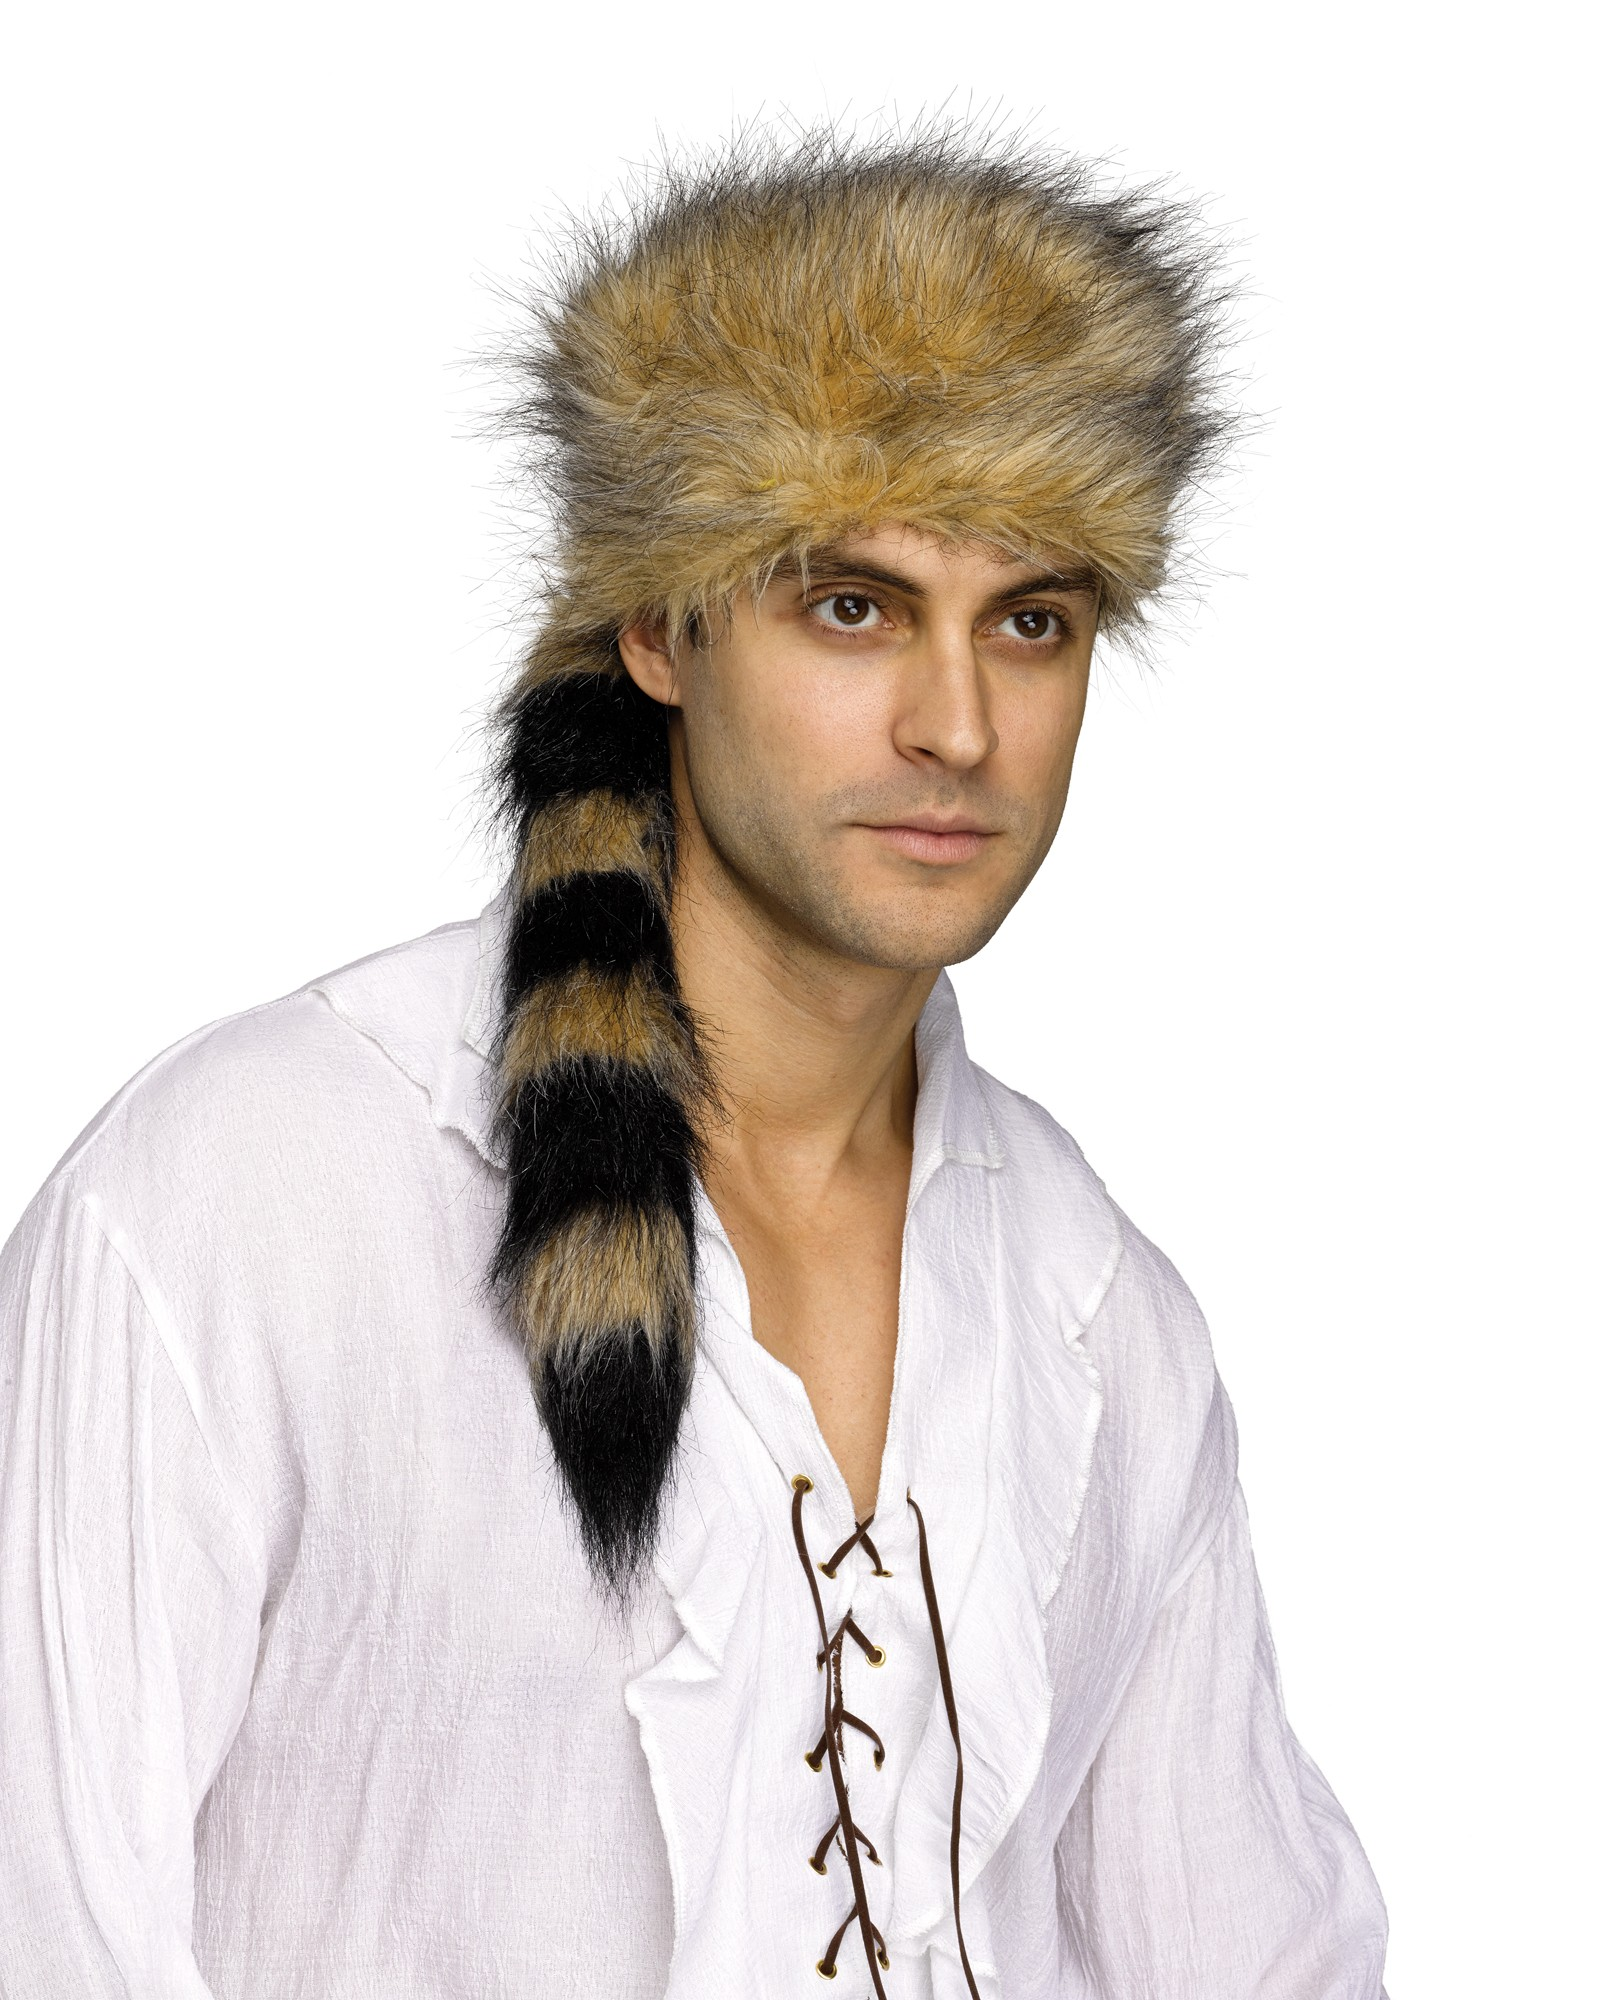 Coon Skin Coonskin Cap Raccoon Hunting Davy Crockett Furry Tail Hat Adult dc9c7589567